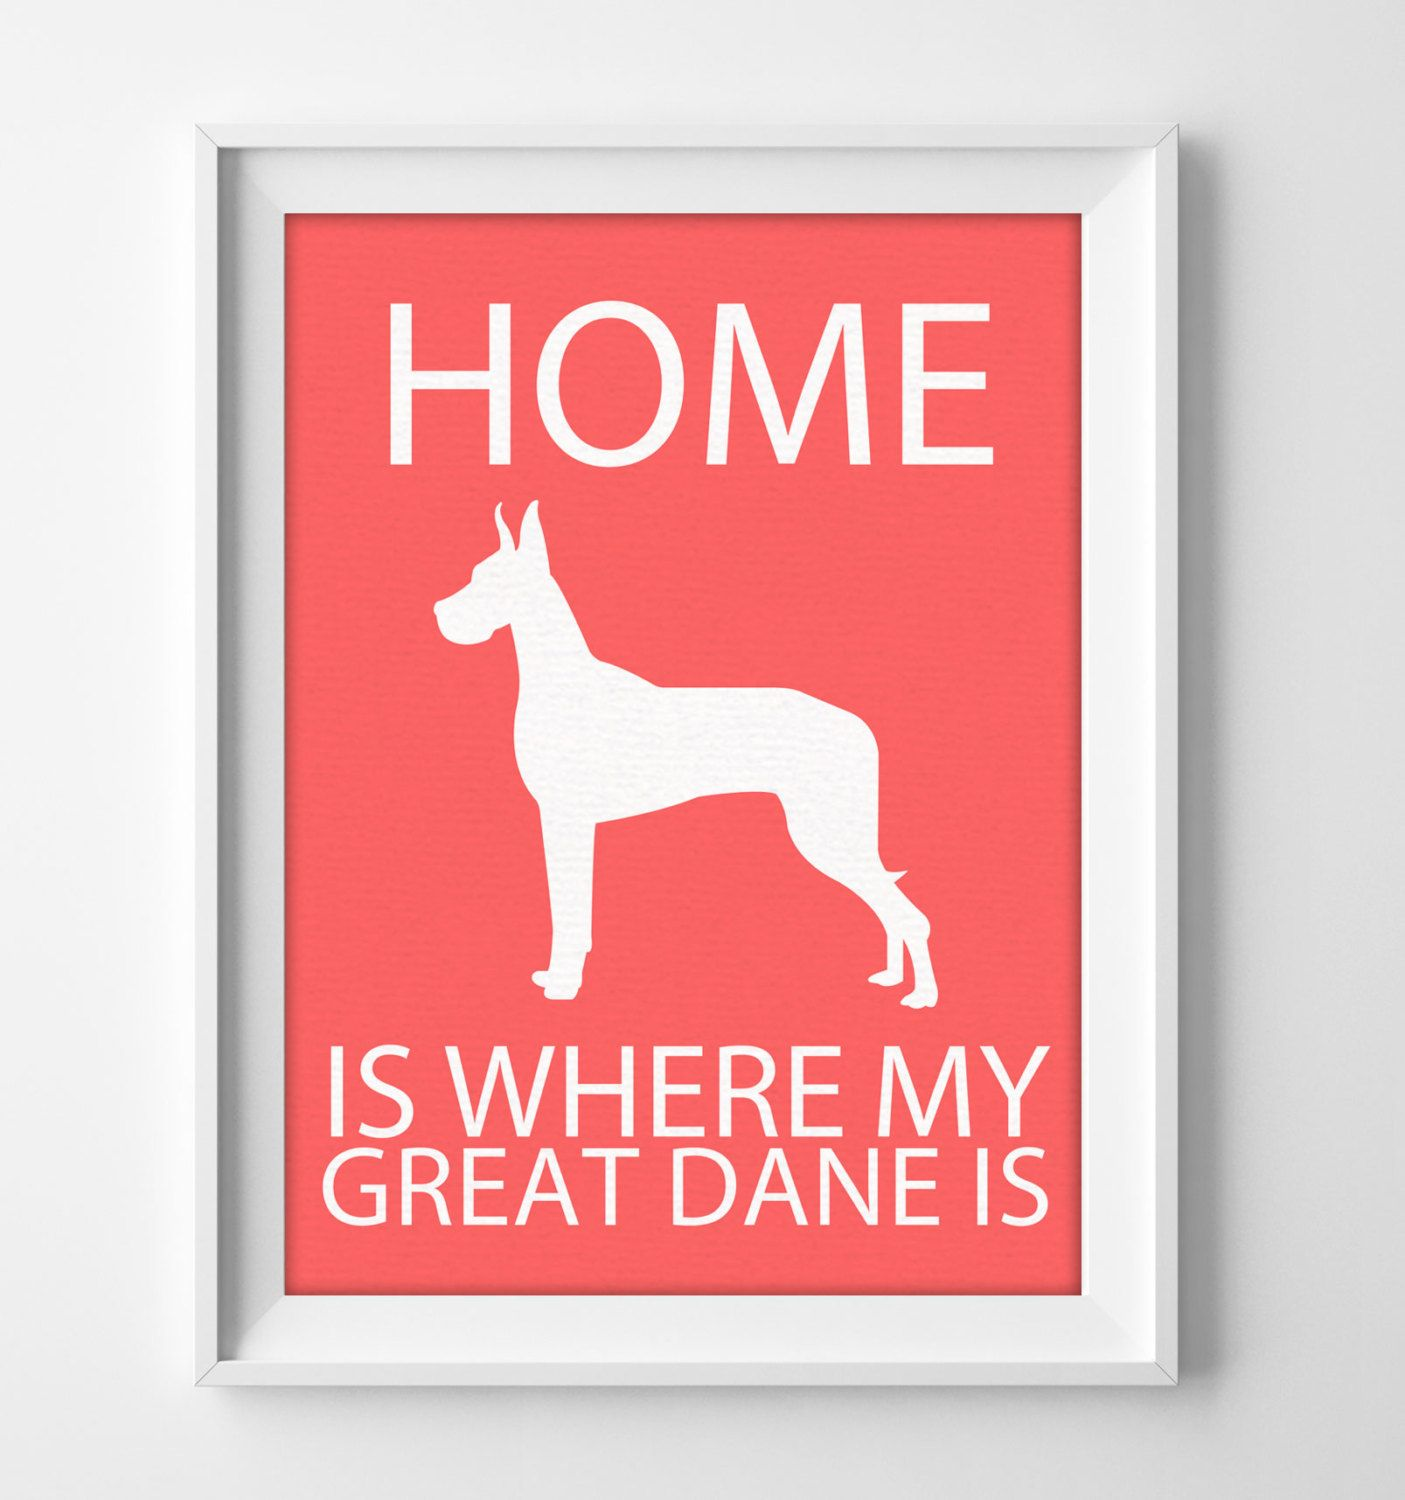 8x10 Great Dane Wall Art Ilrated Dog Decor